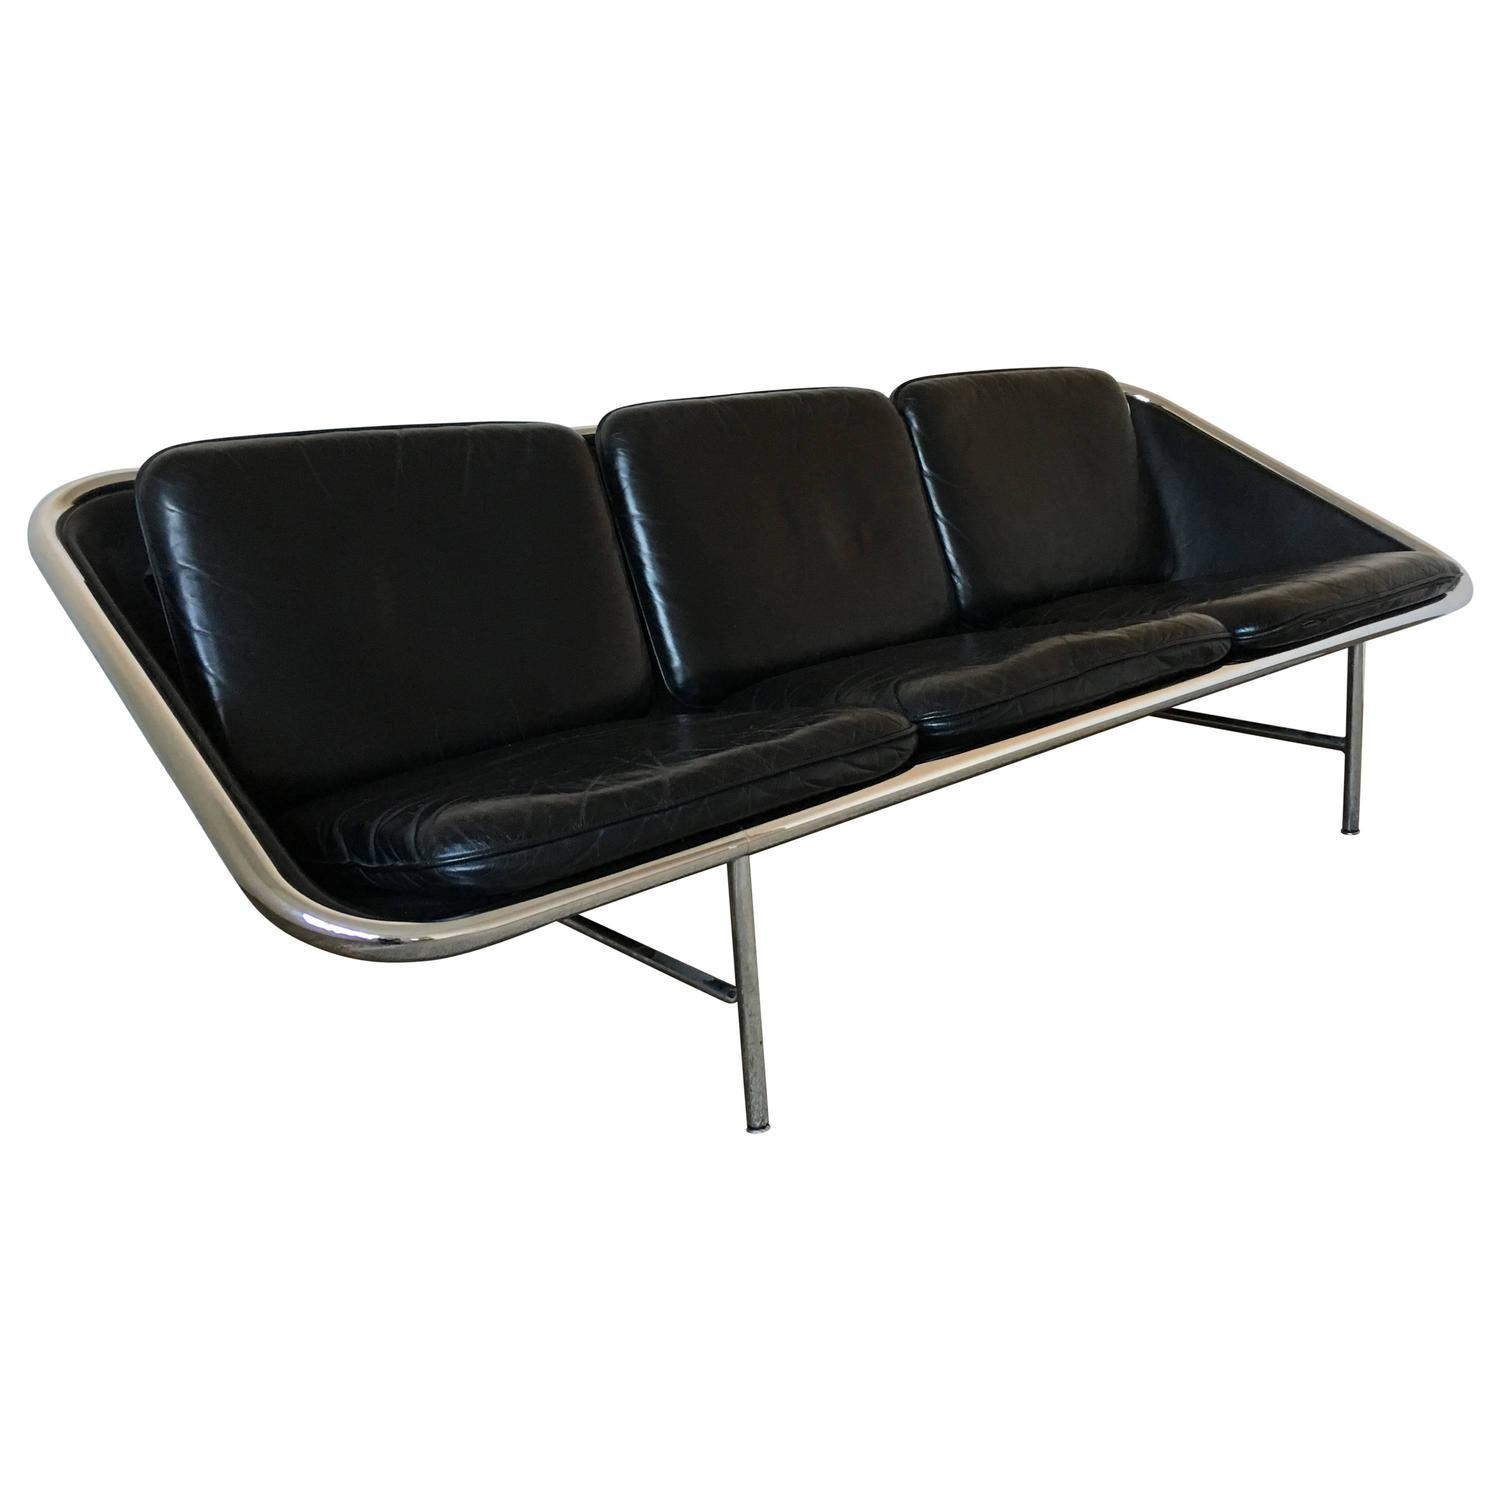 George Nelson Black Leather Sling Sofa, Herman Miller, Circa 1960 Pertaining To George Nelson Sofas (View 3 of 20)